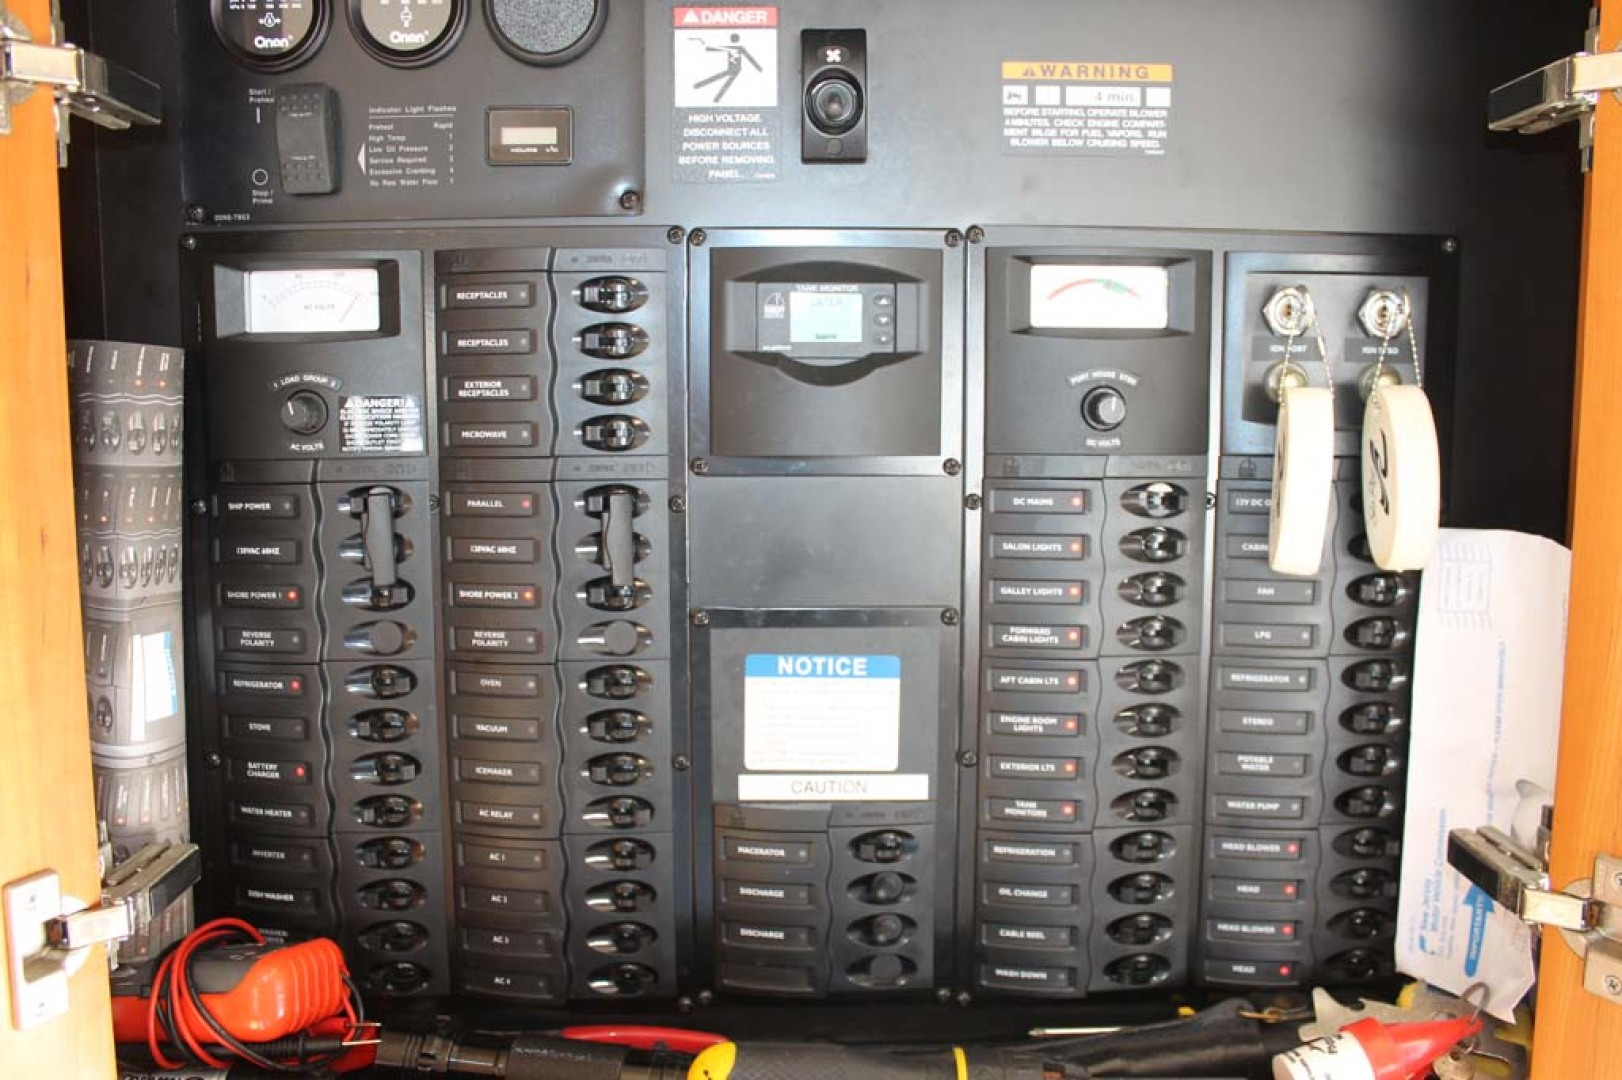 Meridian-Sedan Bridge 2004-Knot Home Avalon-New Jersey-United States-Electrical Panel-1074111 | Thumbnail